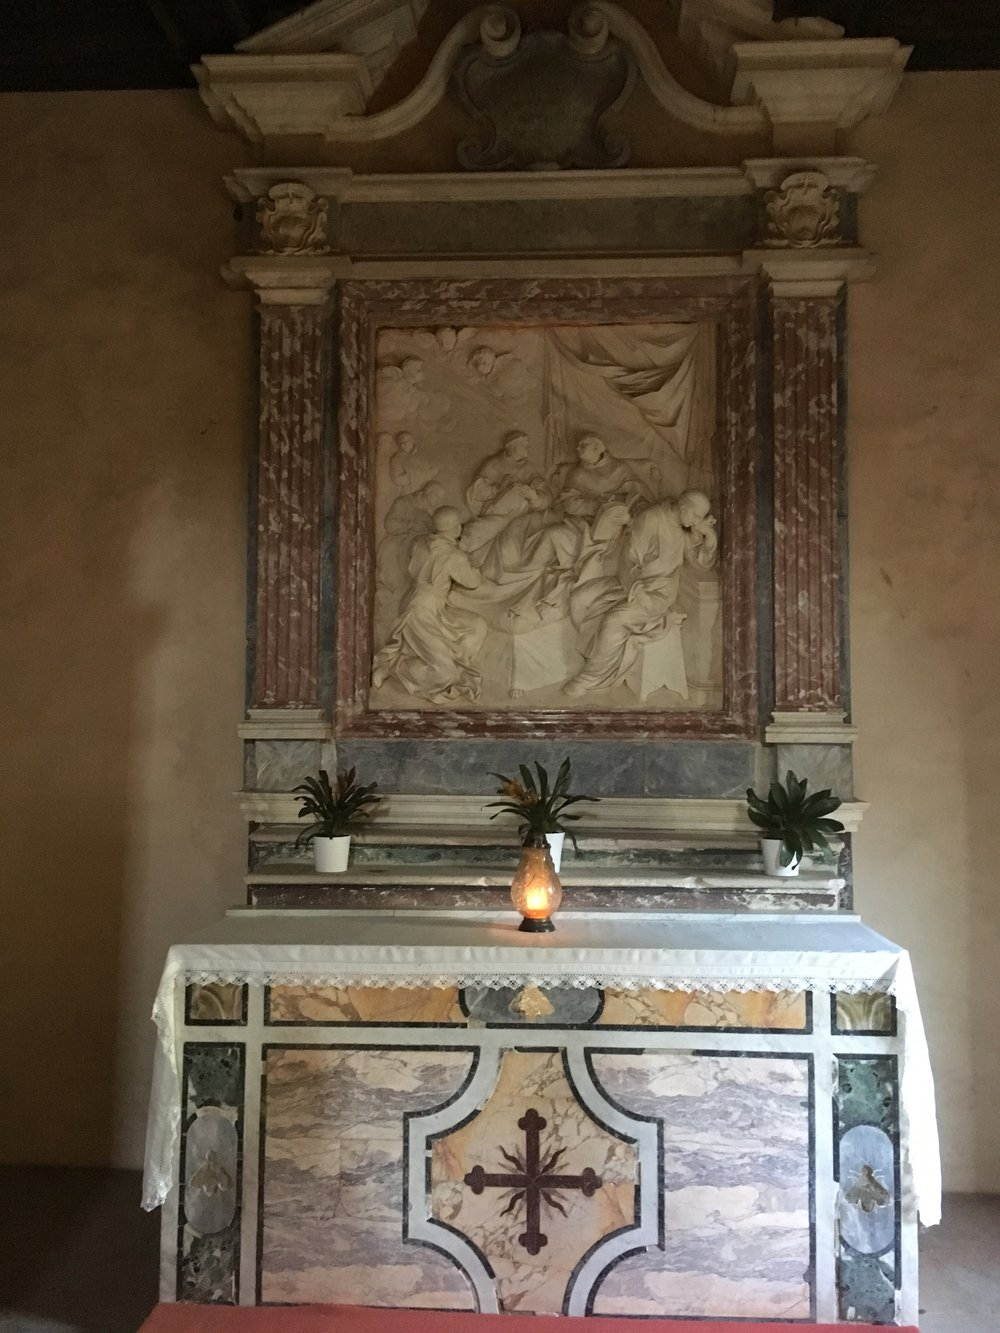 the altar of the abbot's quarters of the fossanova monastery, where aquinas spent his last days. Photo credit: ryan brady